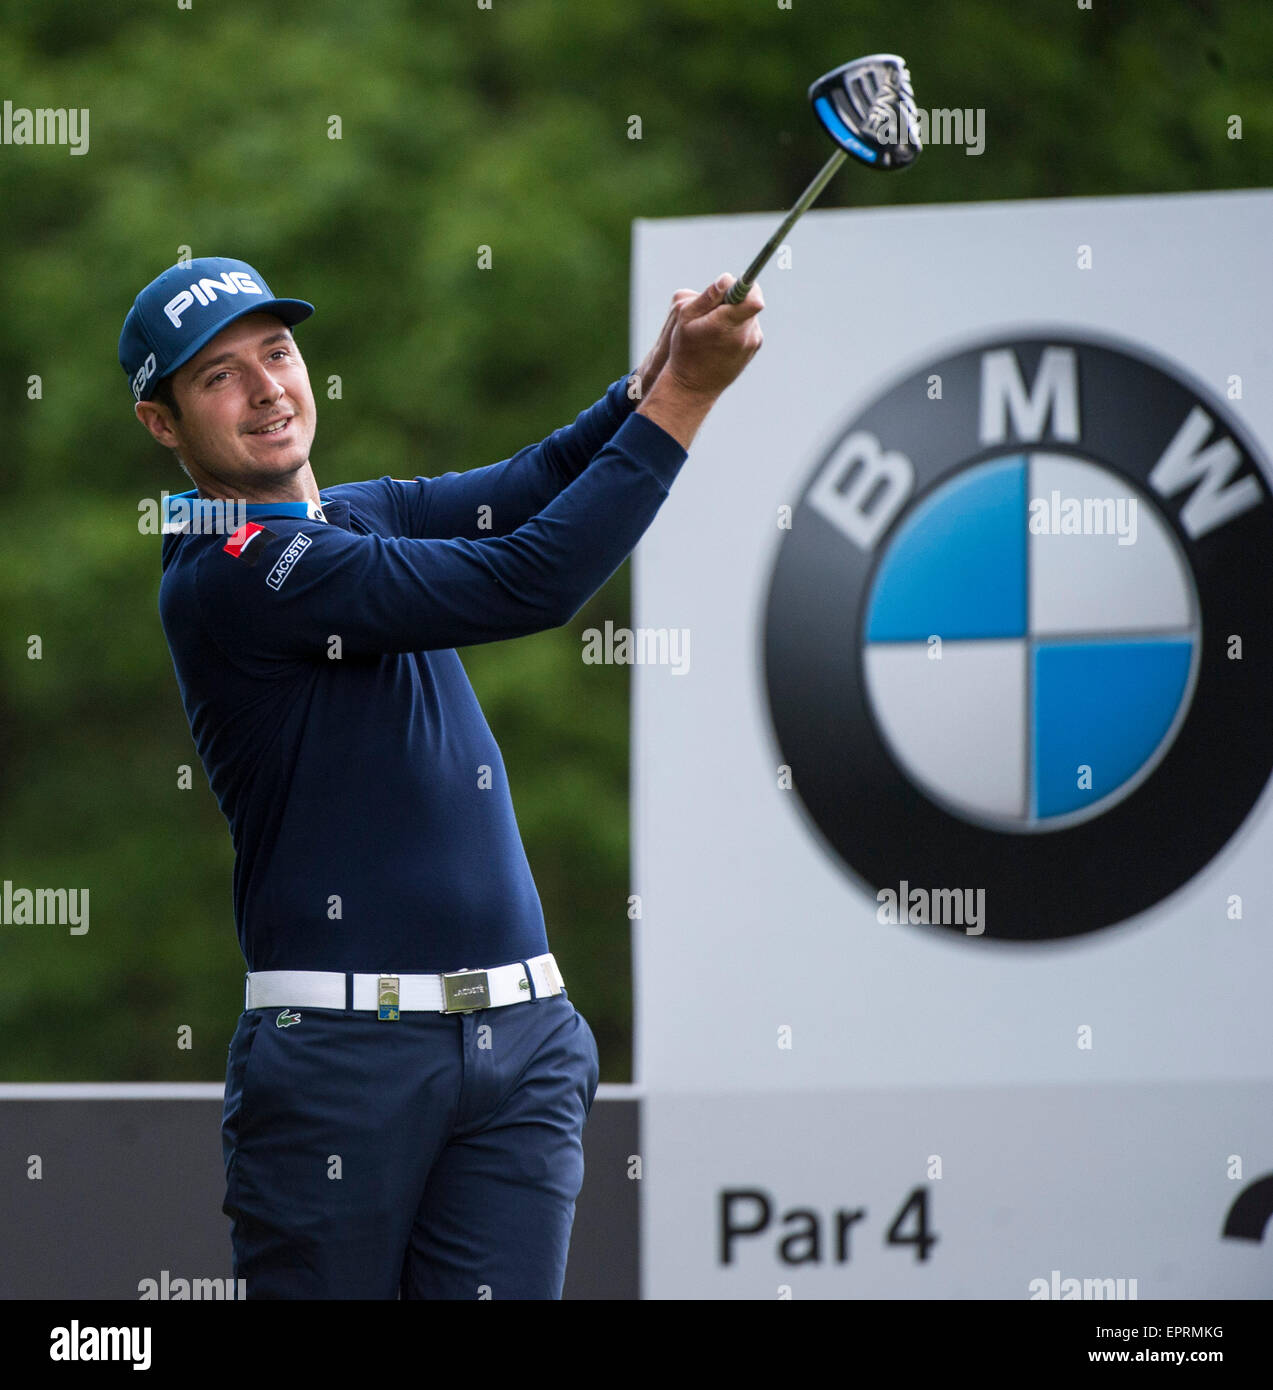 Wentworth, UK. 21st May, 2015. BMW PGA Golf Championship. Round 1. Julien Quesne [FRA] on the Par 4 3rd, during - Stock Image